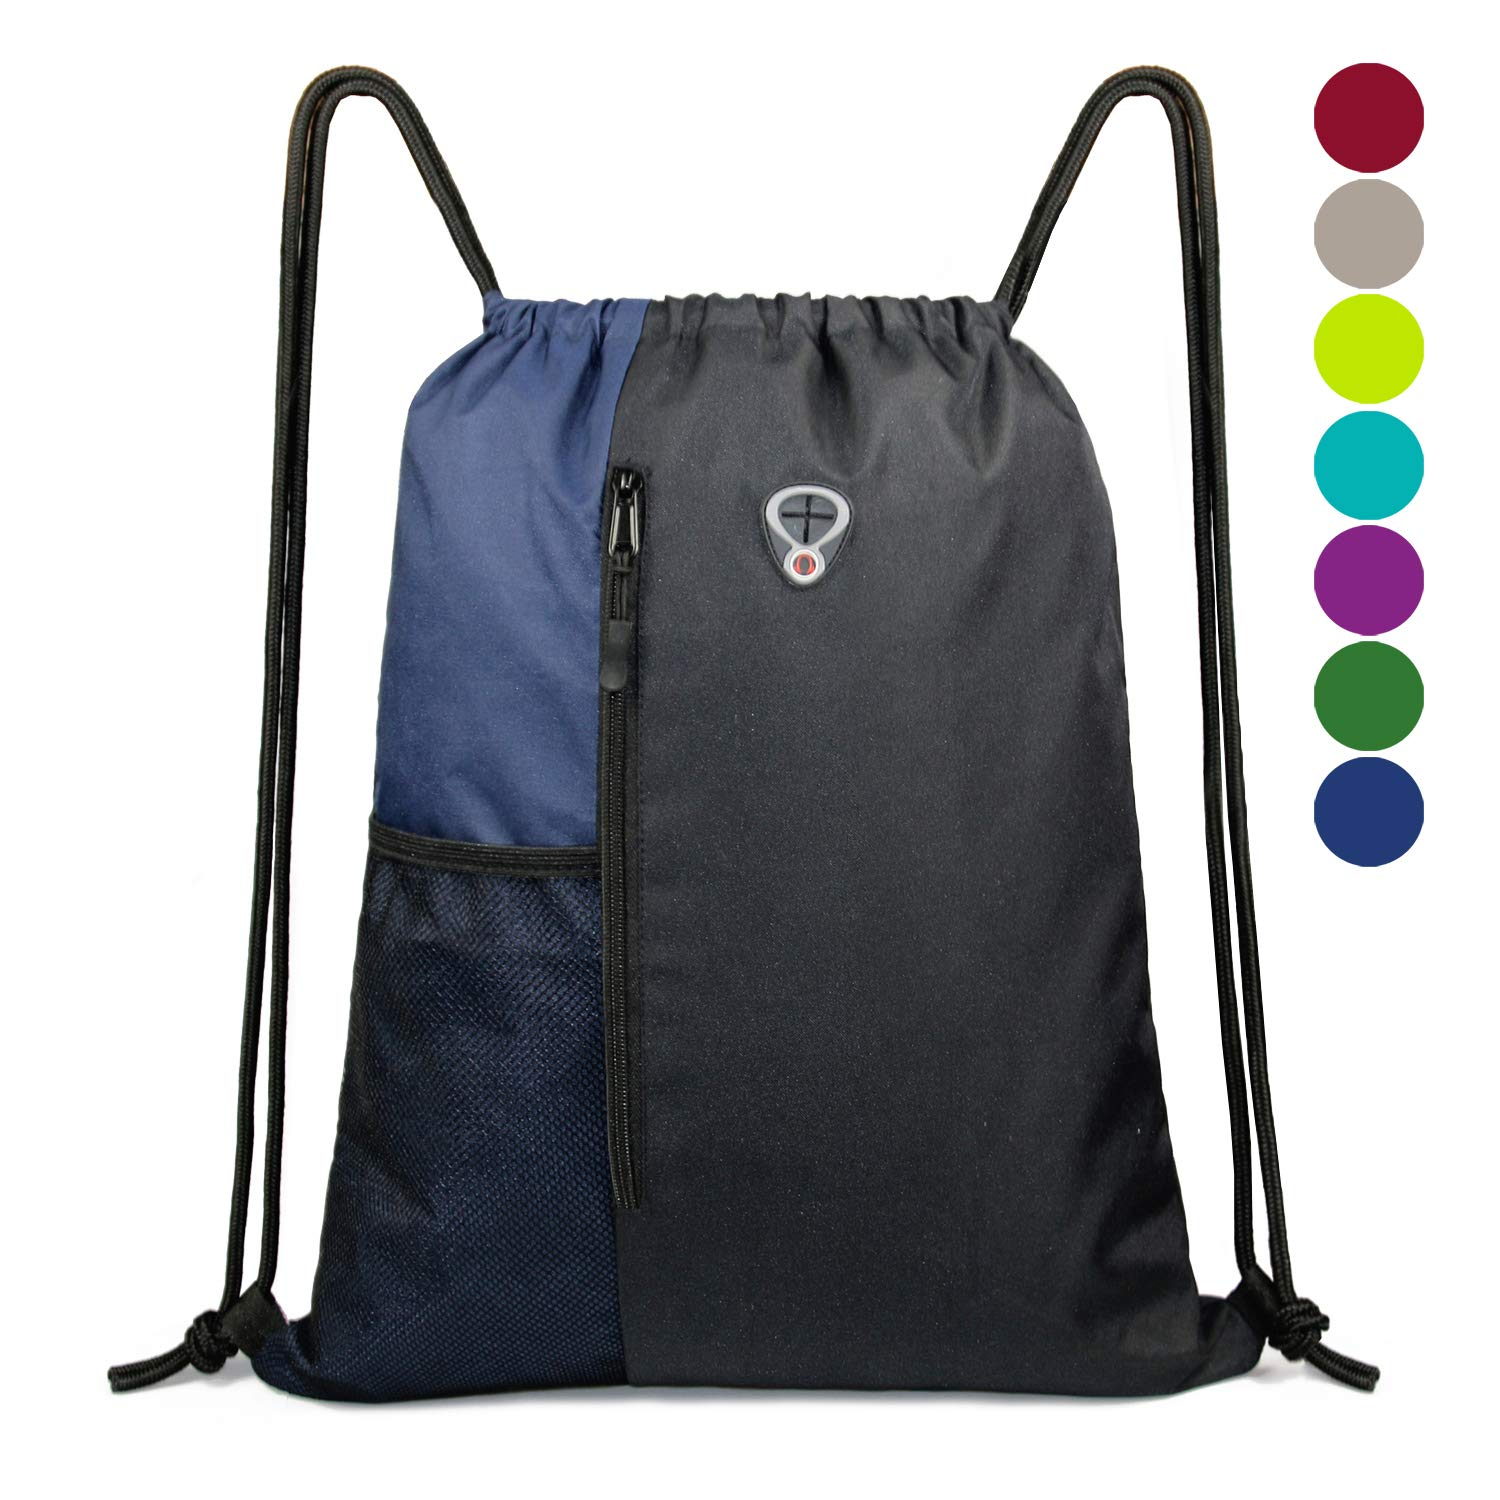 Drawstring Backpack Sports Gym Bag for Women Men Children Large Size with Zipper and Water Bottle Mesh Pockets (Black/Navy) by BeeGreen (Image #1)